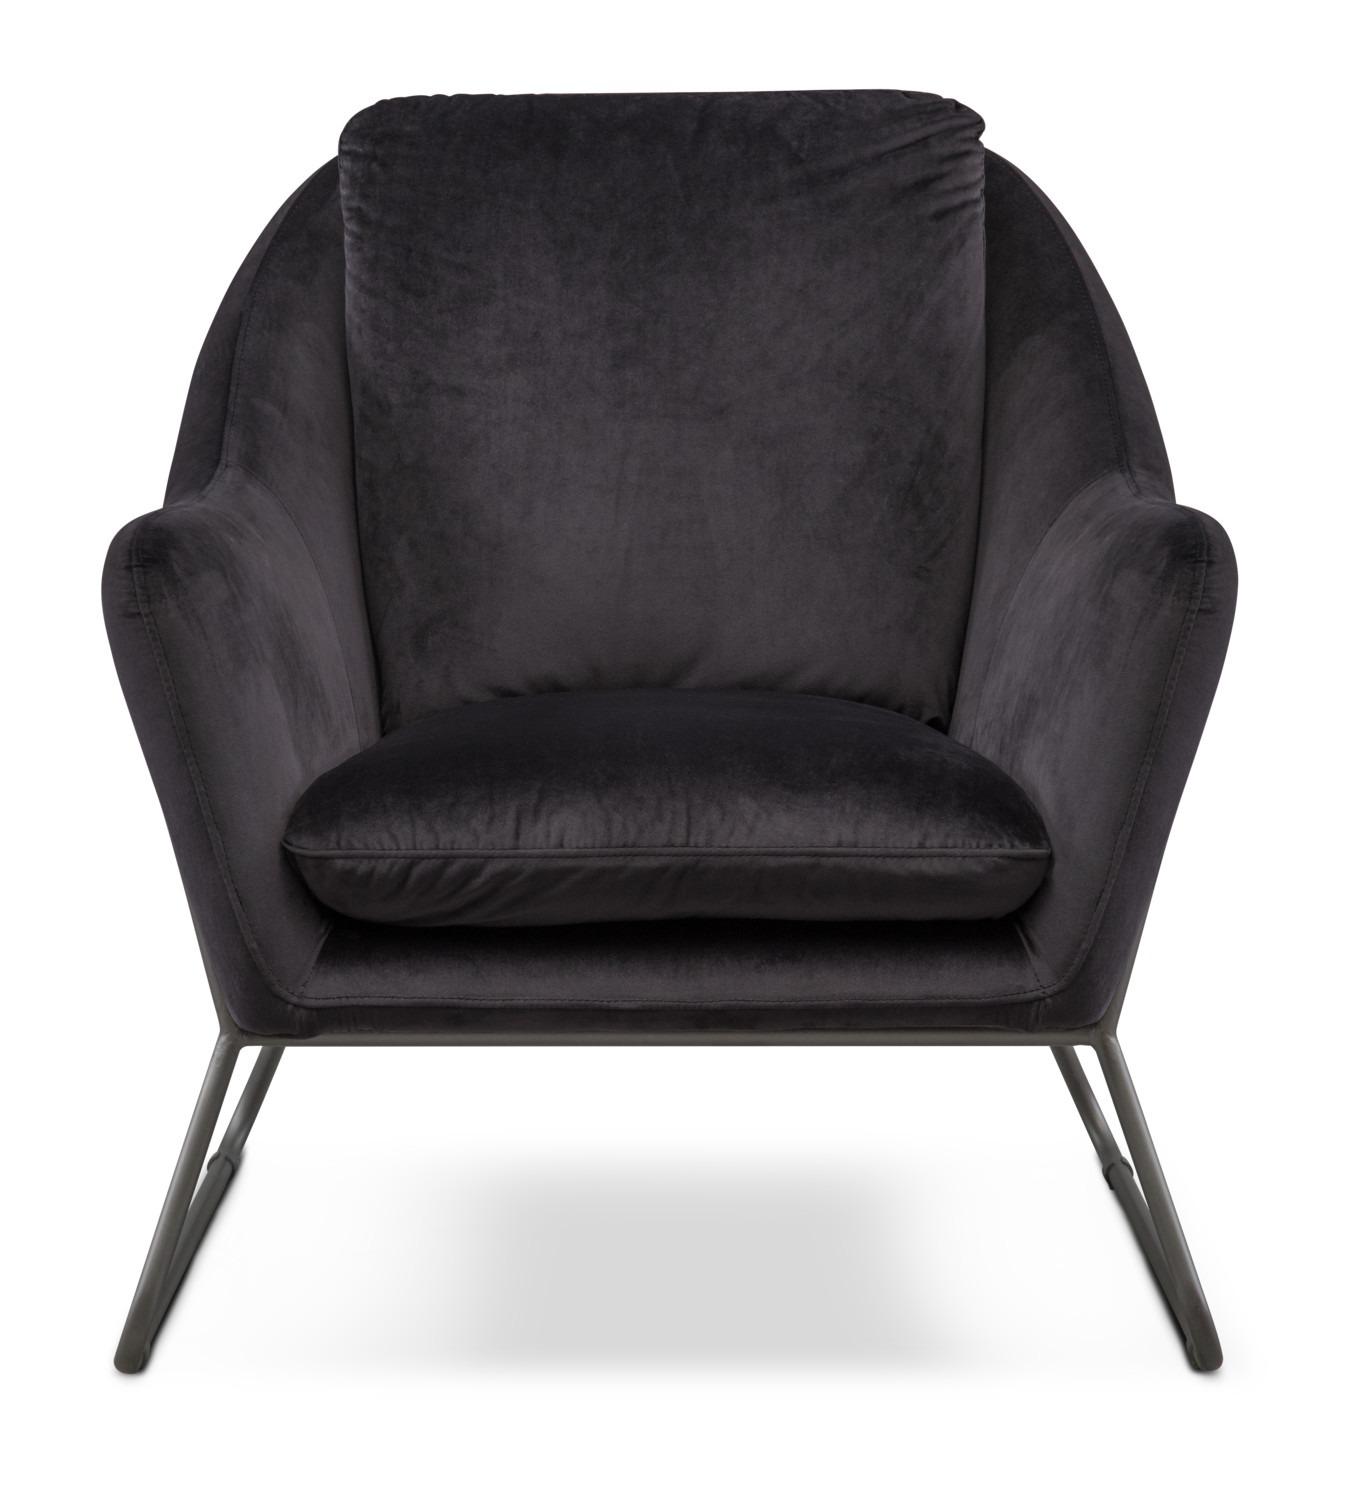 Willow Accent Chair - Black | Value City Furniture and Mattresses